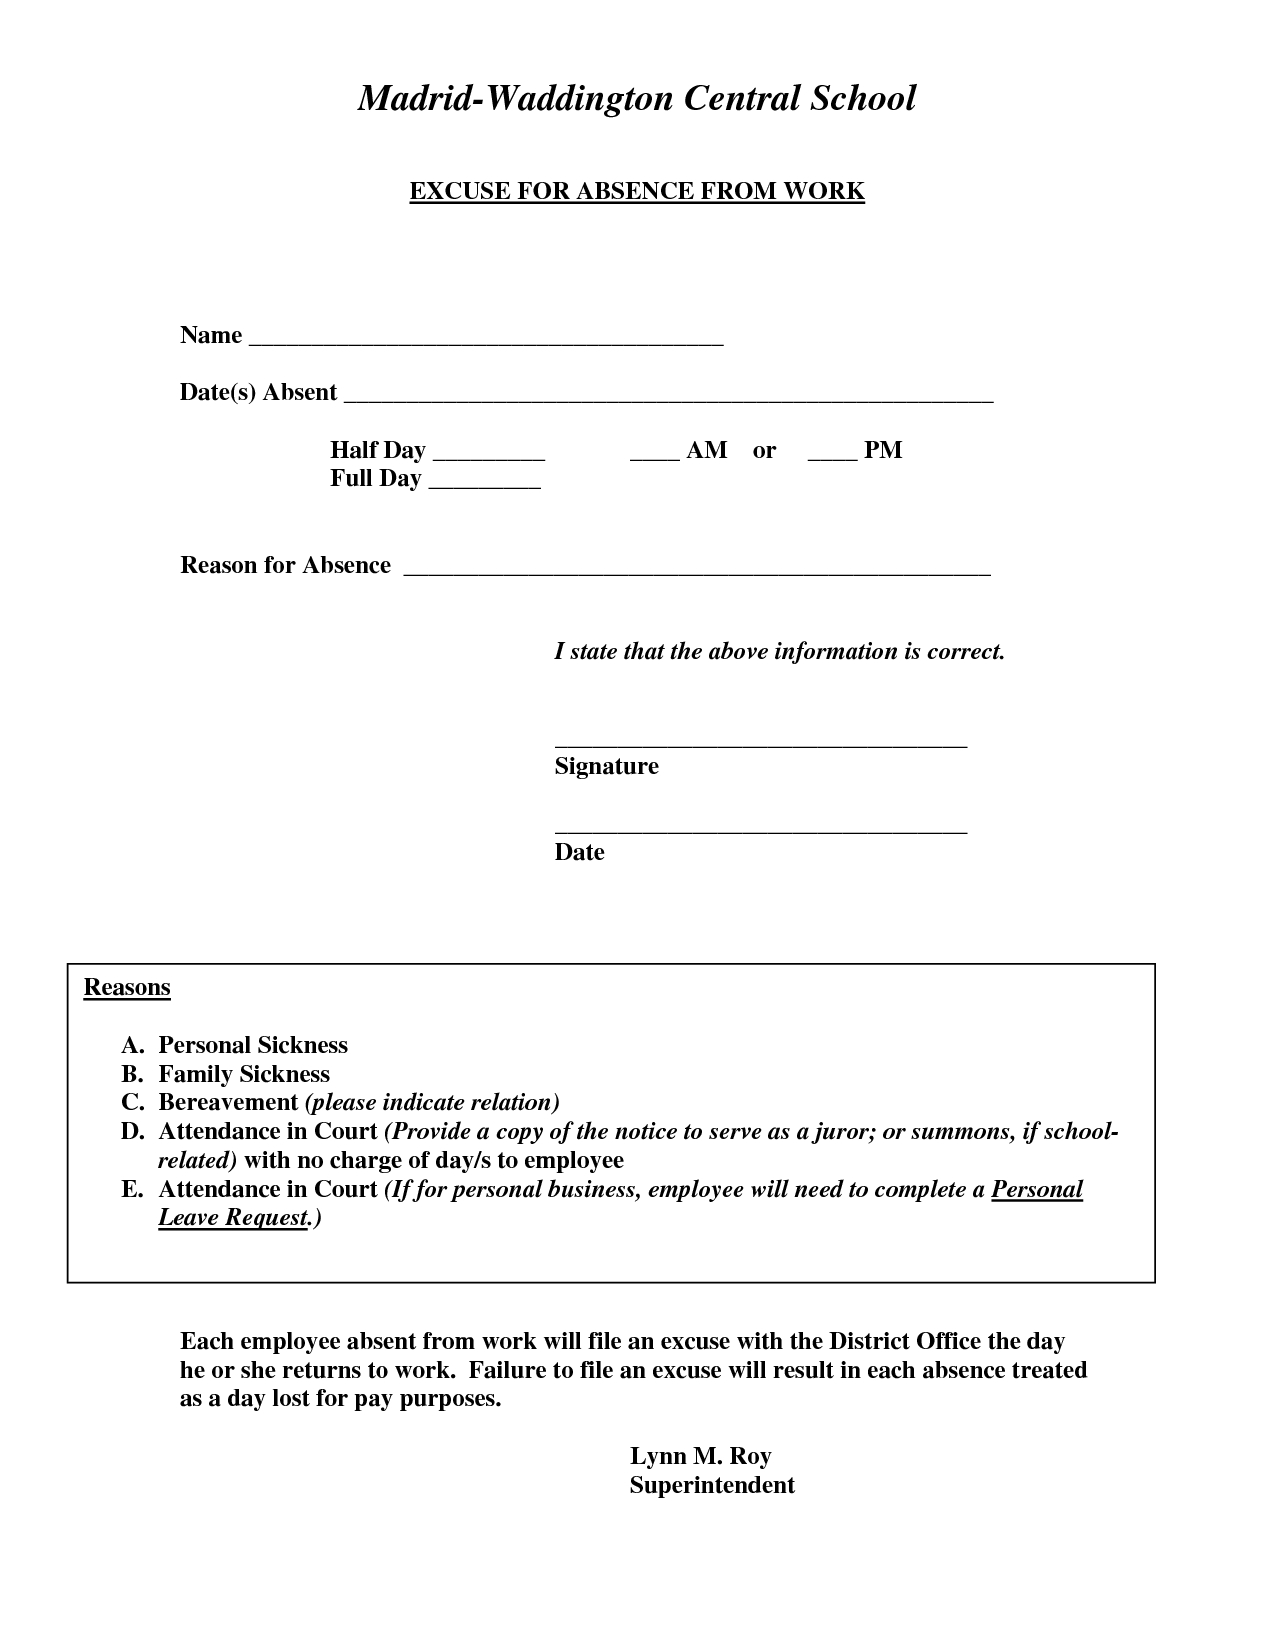 Doctors Excuse For Work Template | Excuse For Absence From Work - Doctor Notes For Free Printable